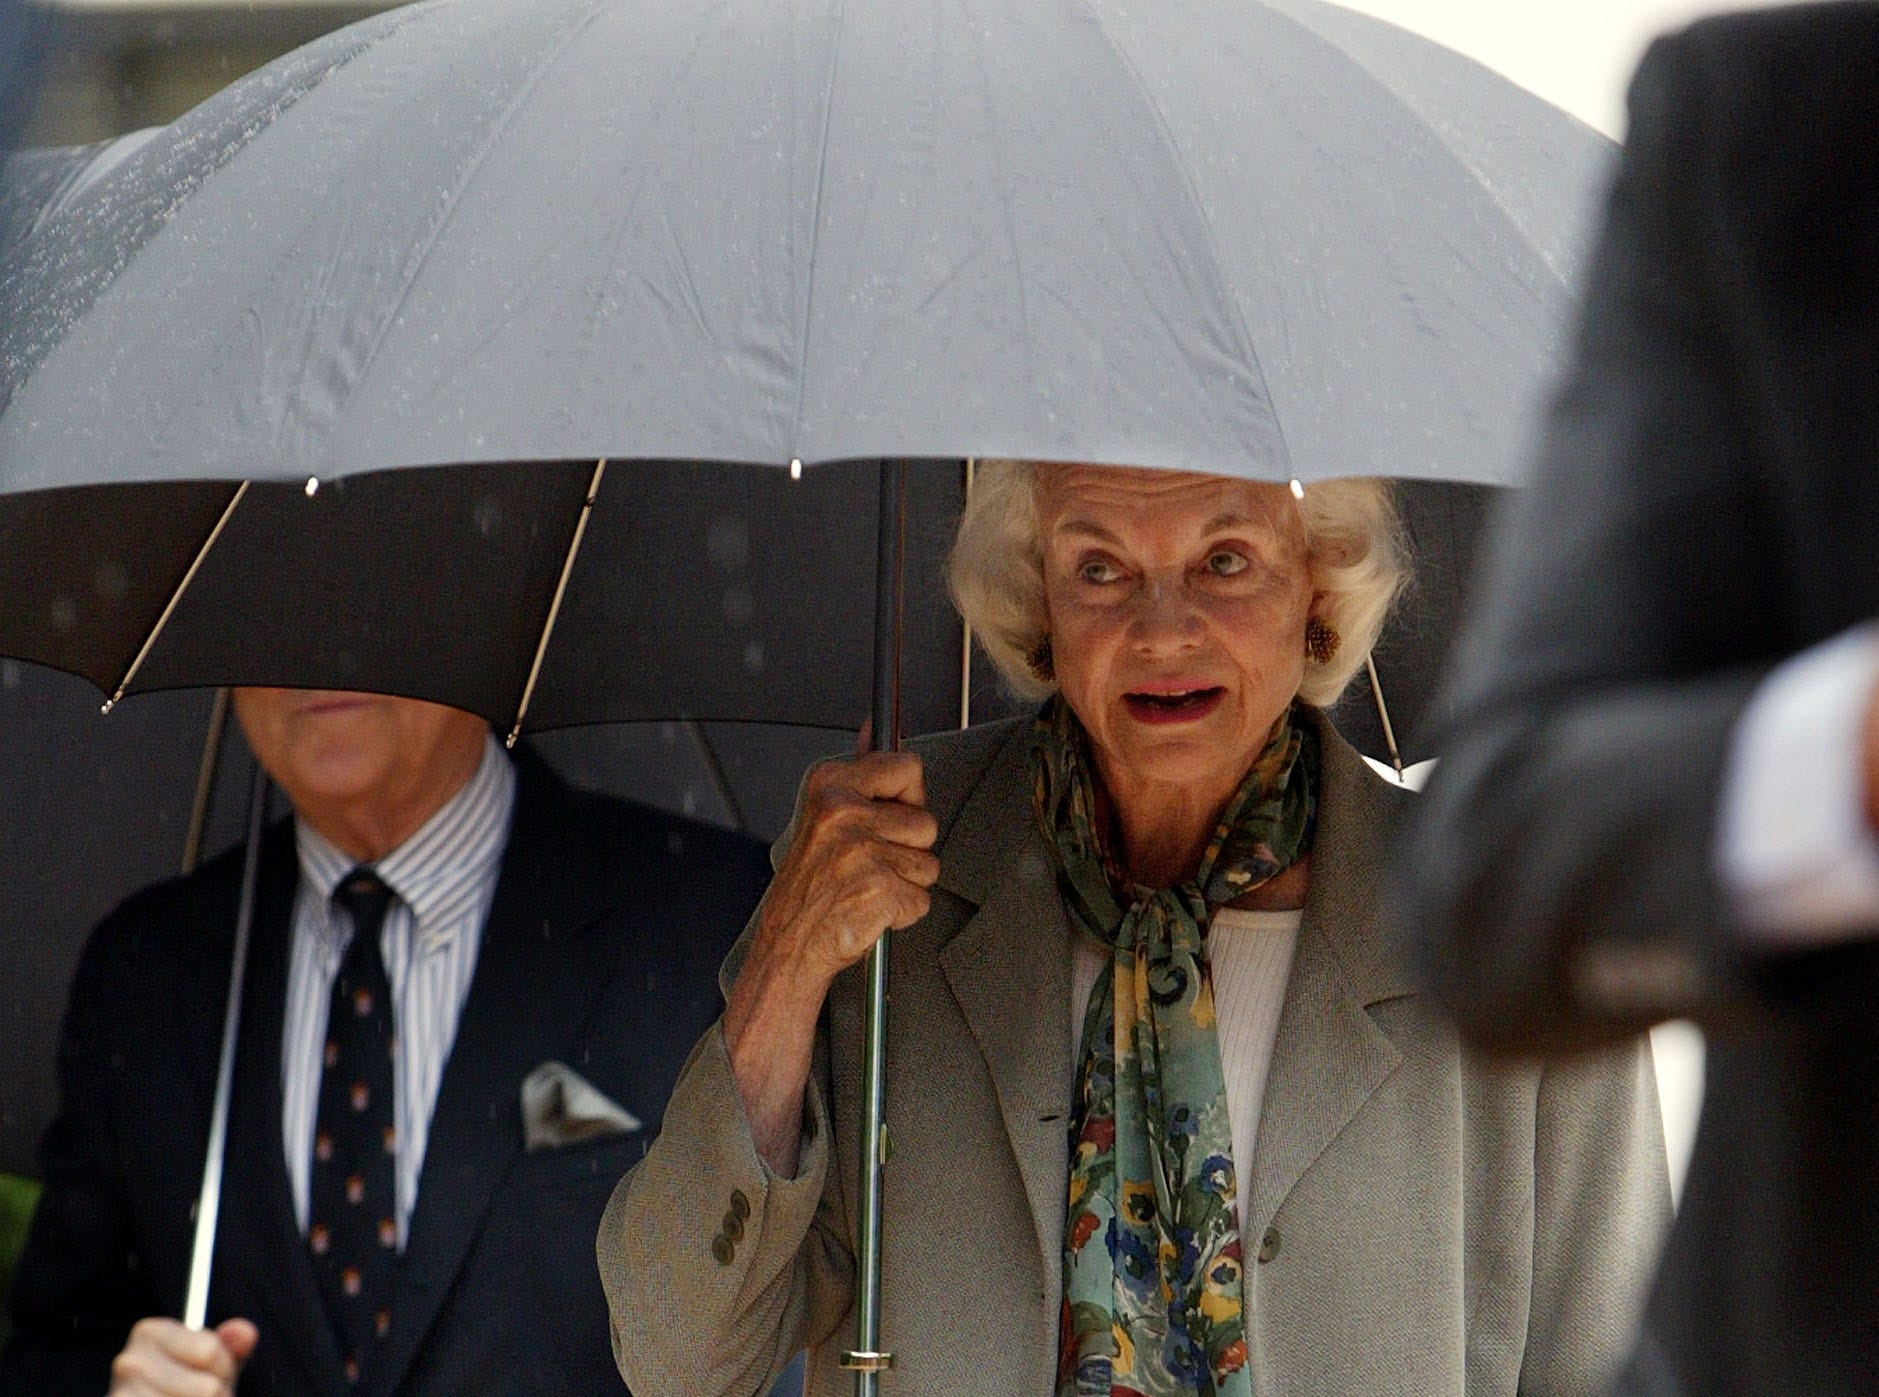 Supreme Court Associate Justice Sandra Day O'Connor, center, arrives in a pouring rain, Tuesday, June 17, 2003, at a groundbreaking ceremony for a new section of the Supreme Court in Washington. It is phase one of a five-year restoration.